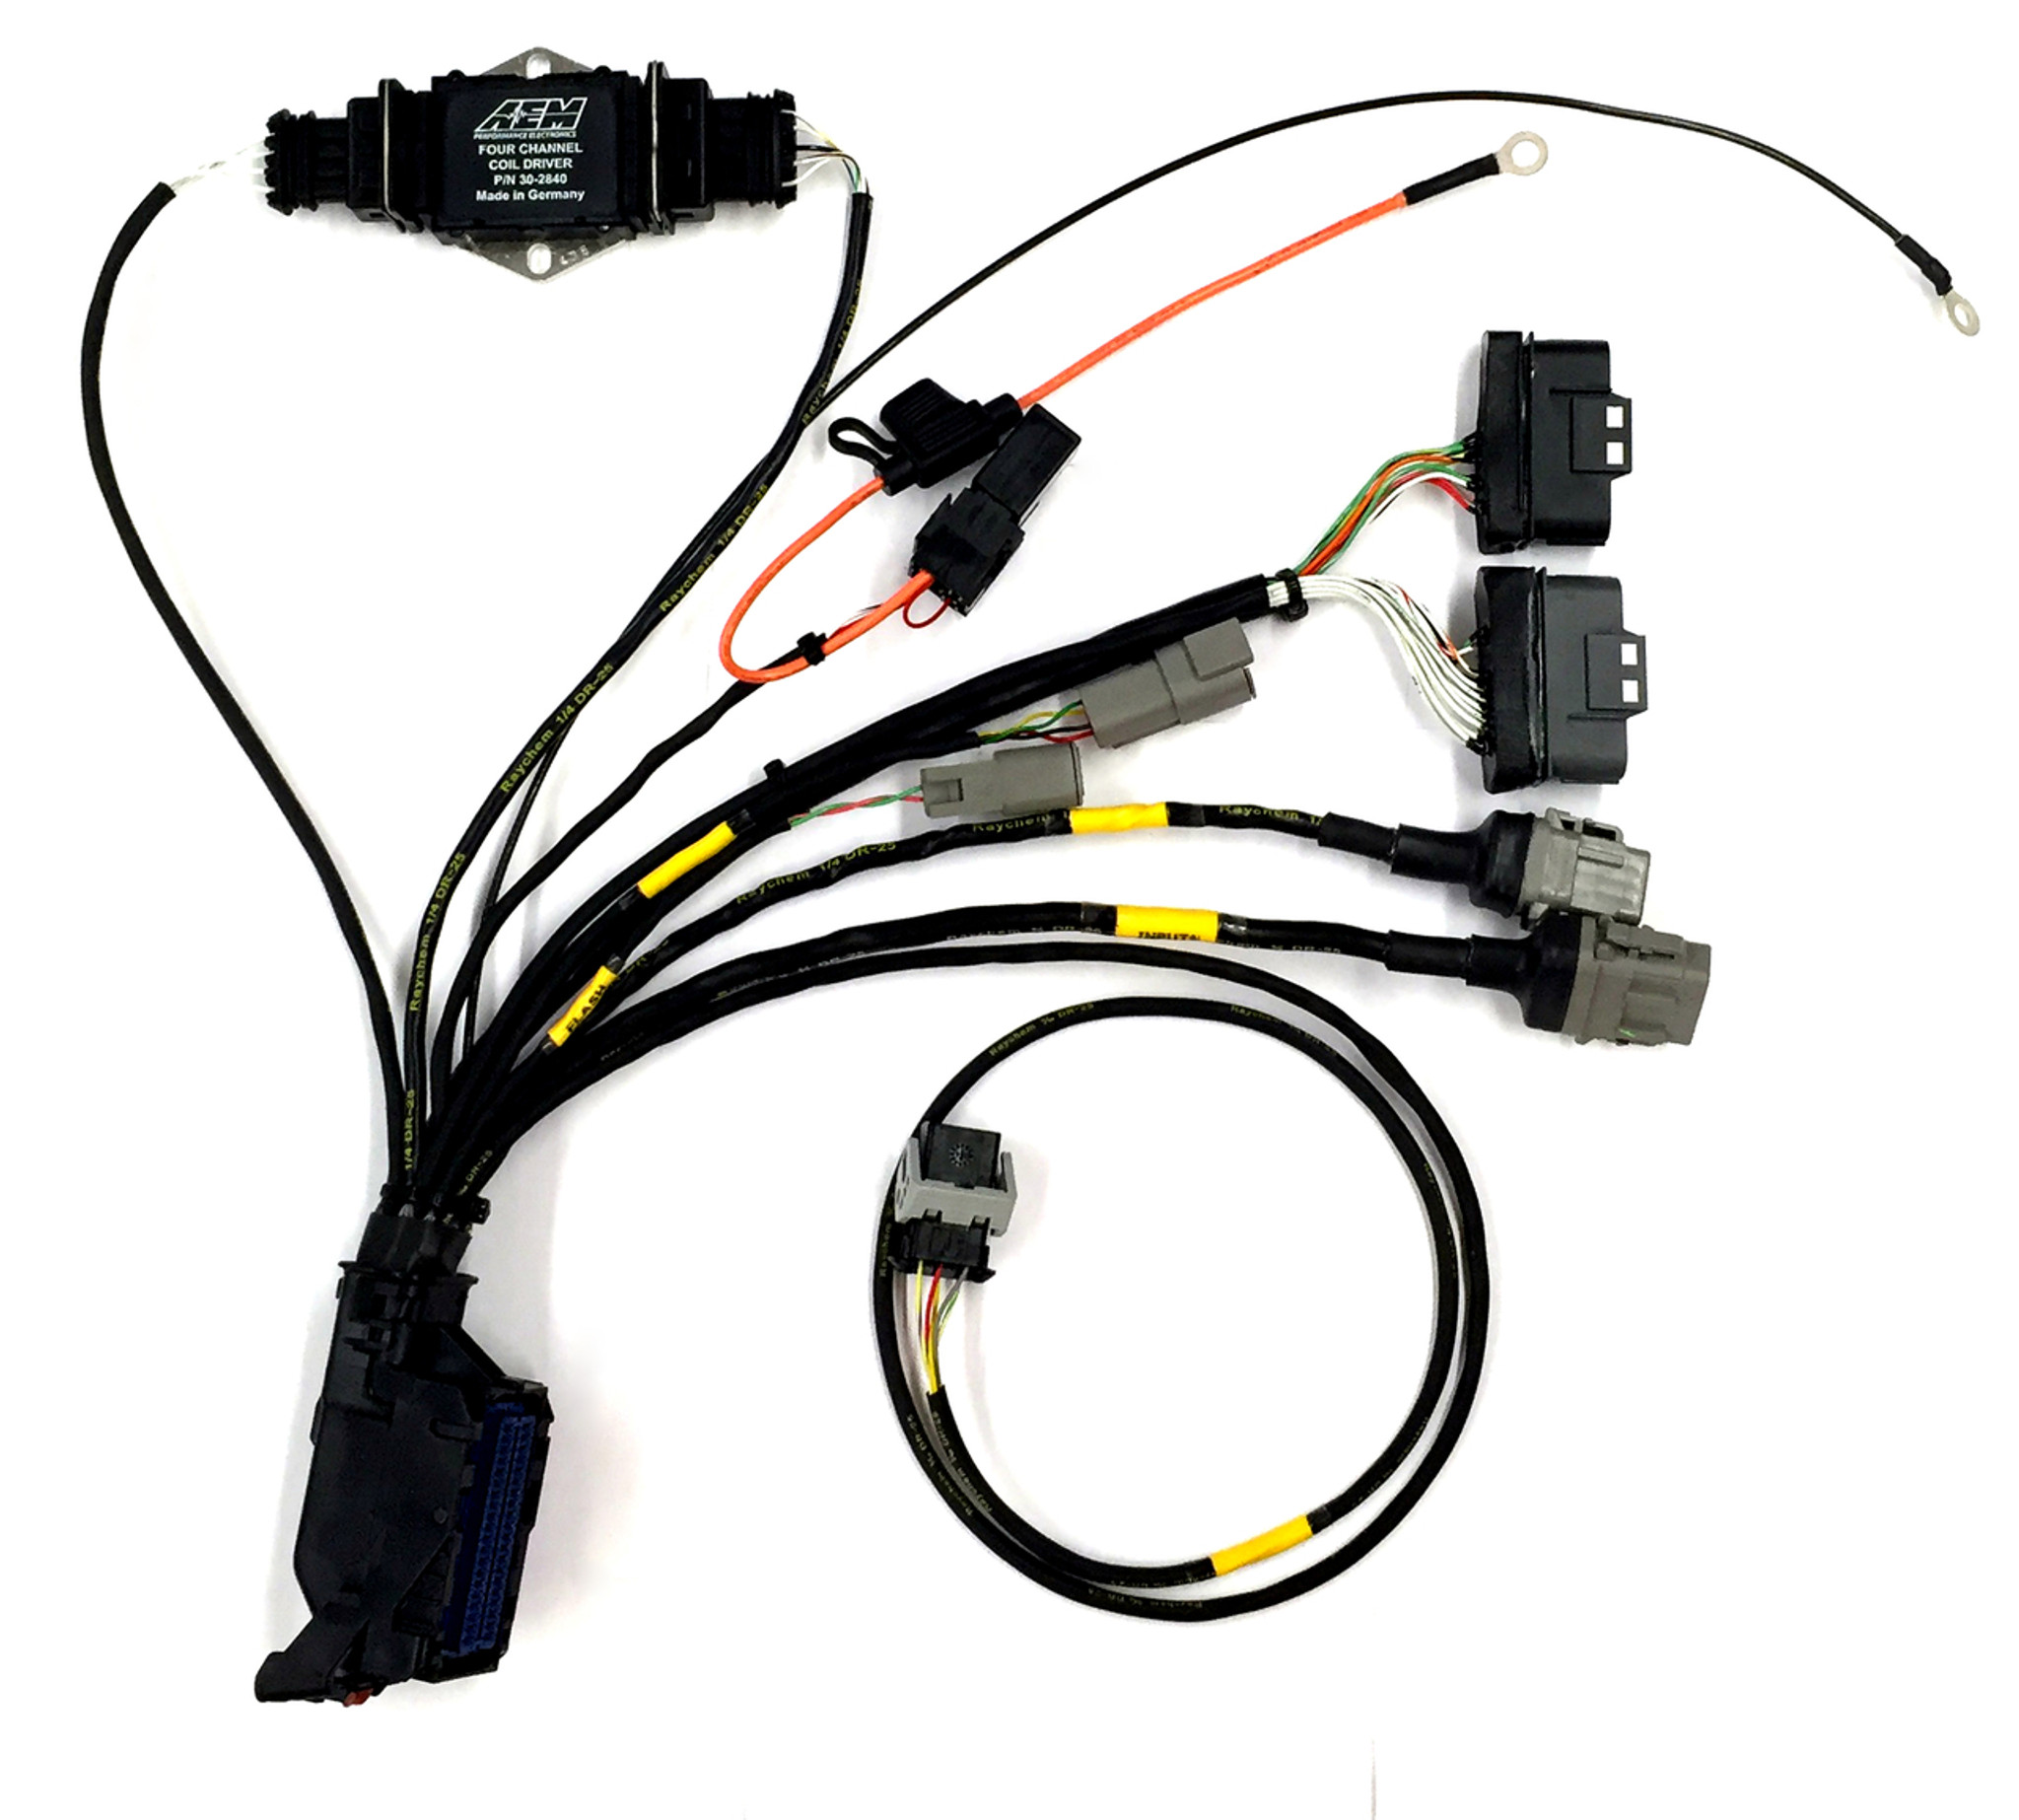 small resolution of infinity ecu plug and play wiring harness shop htp p28 ecu wiring harness ecu wiring harness